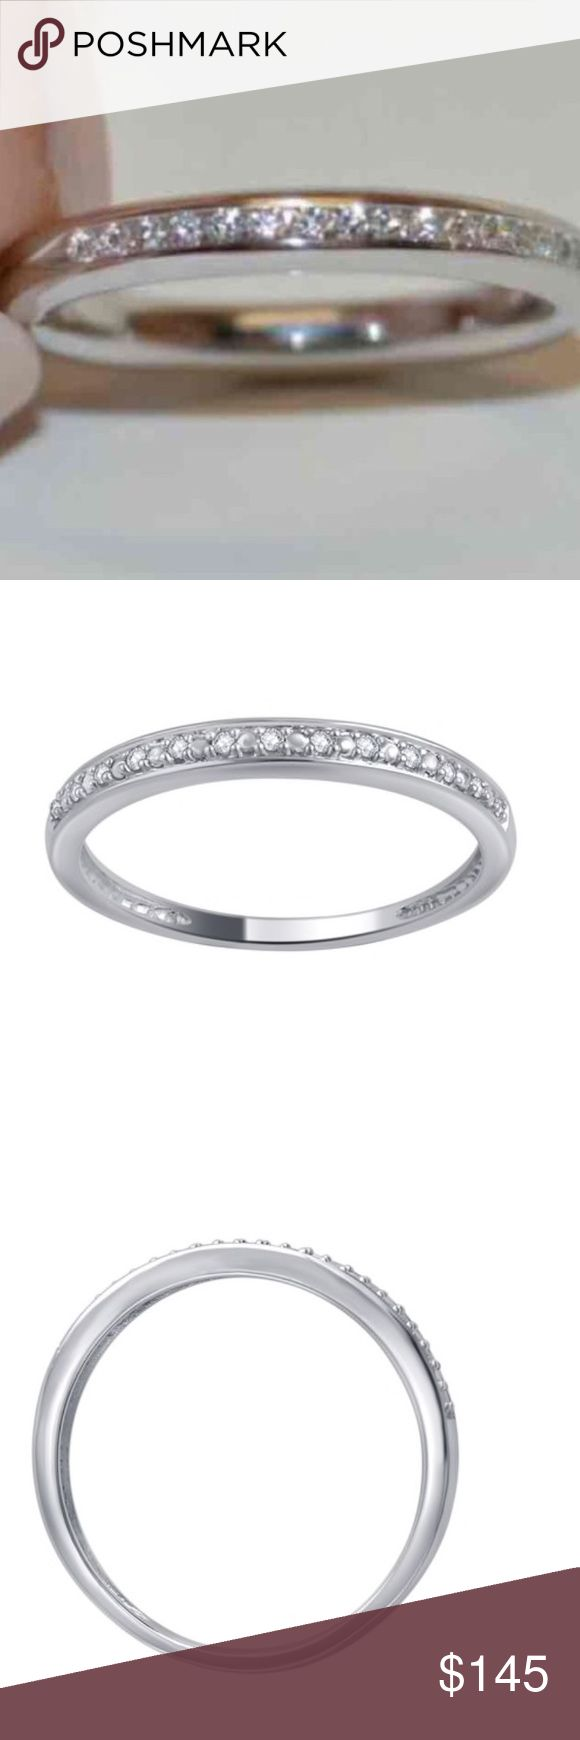 💎🎉$437 Natural Diamond Band Solid 10K W. Gold $437 10K Round Diamond Accent Band - White Gold sizes:  Product Information   Type: Diamond   Treatment: Genuine   Total number of stones: 13   Stone shape: Round   Metal: 10K solid white gold   Polished finish   Weight: 4.5g   Band width: 0.06   Full dimensions: 0.79x0.06x0.83 Jewelry Rings